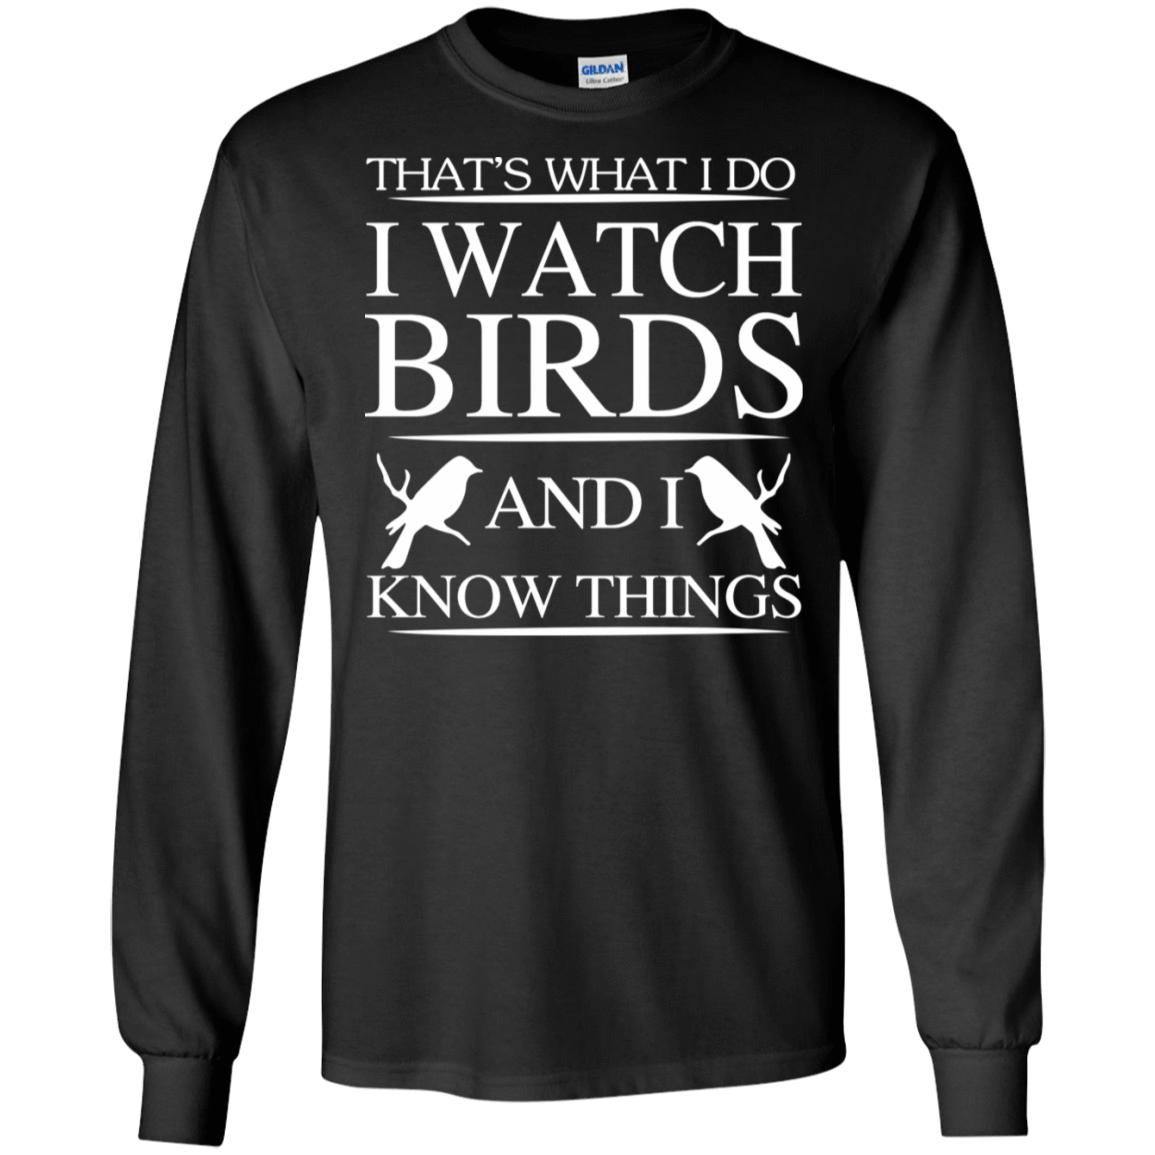 That's What I Do I Watch Birds And I Know Things 30-186-72789237-333 - Tee Ript